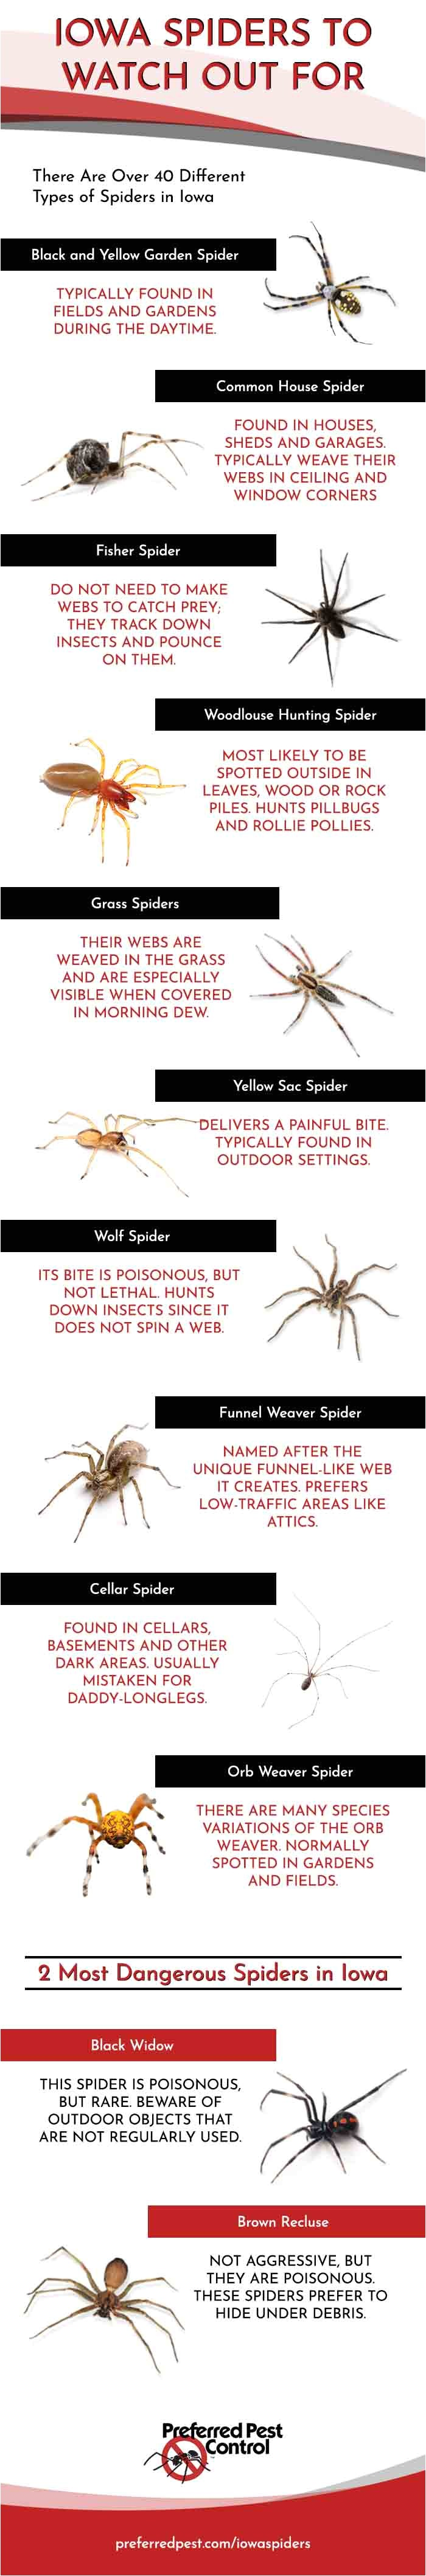 spiders in iowa infographic